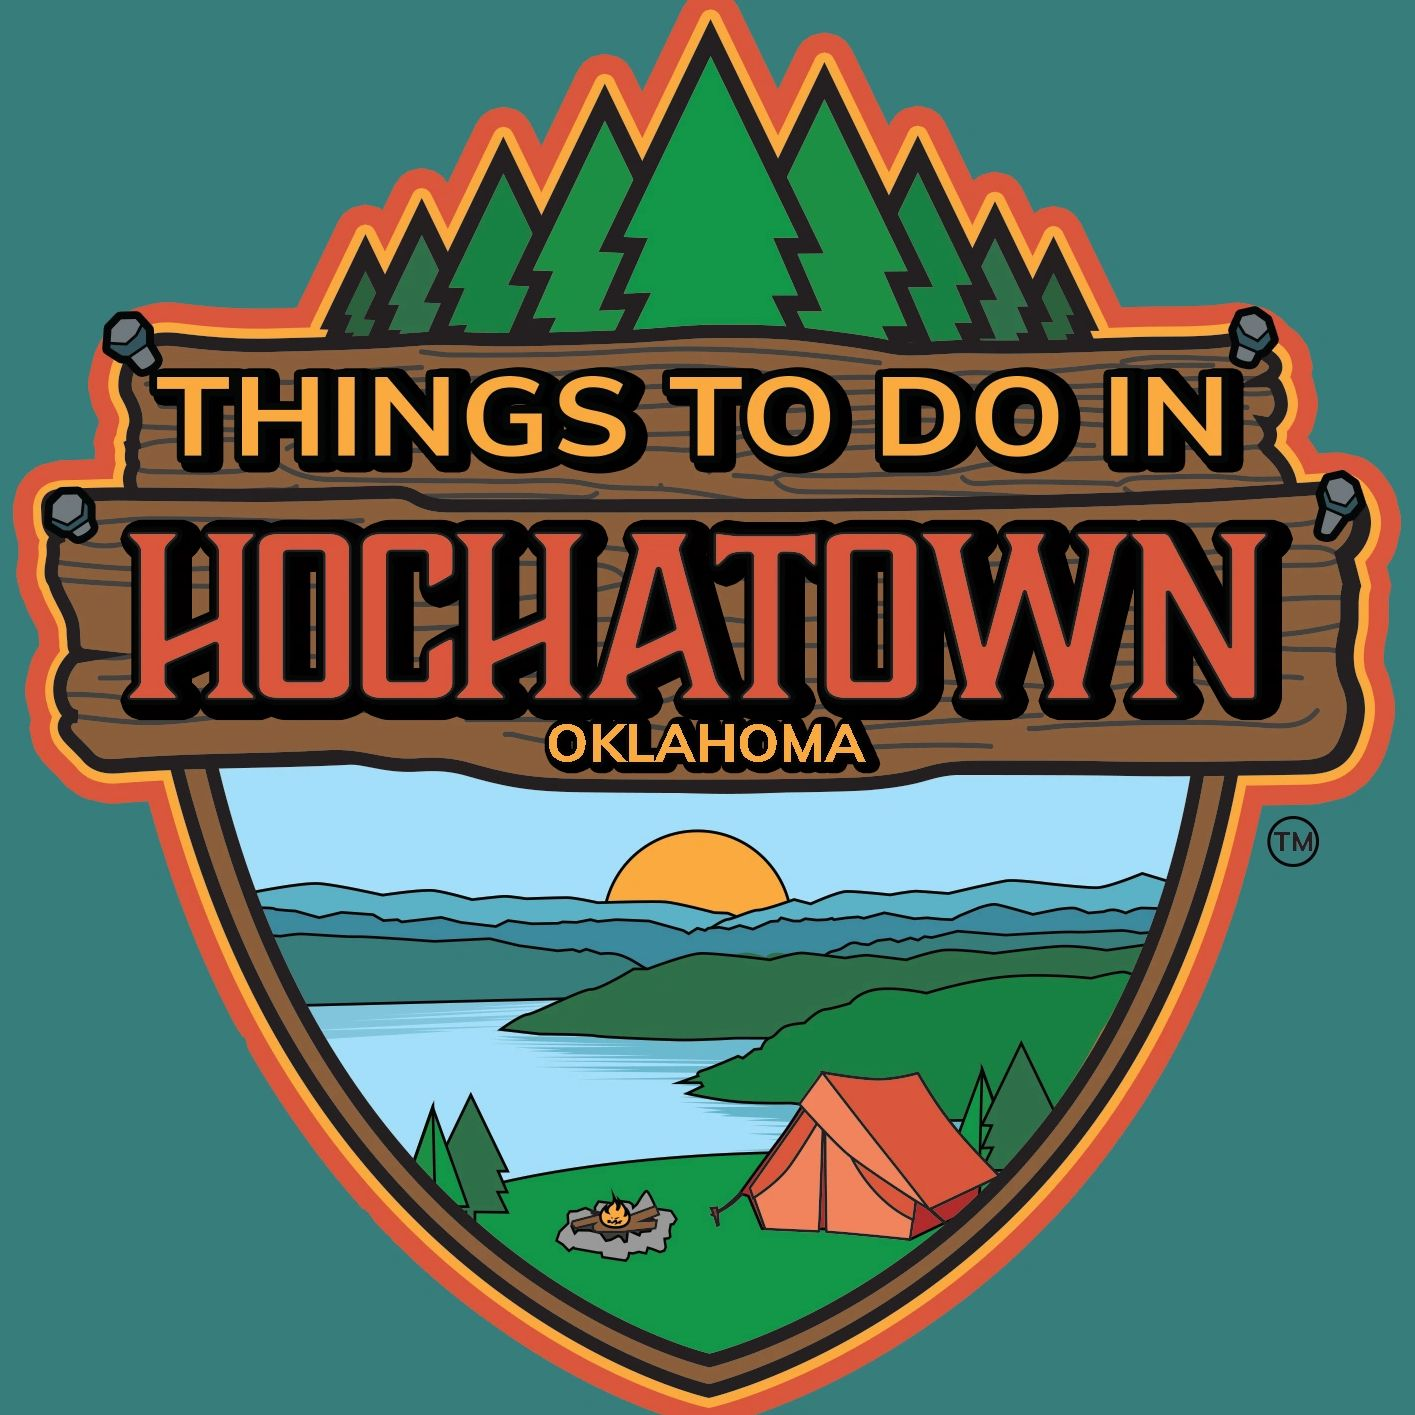 Things to do in Hochatown